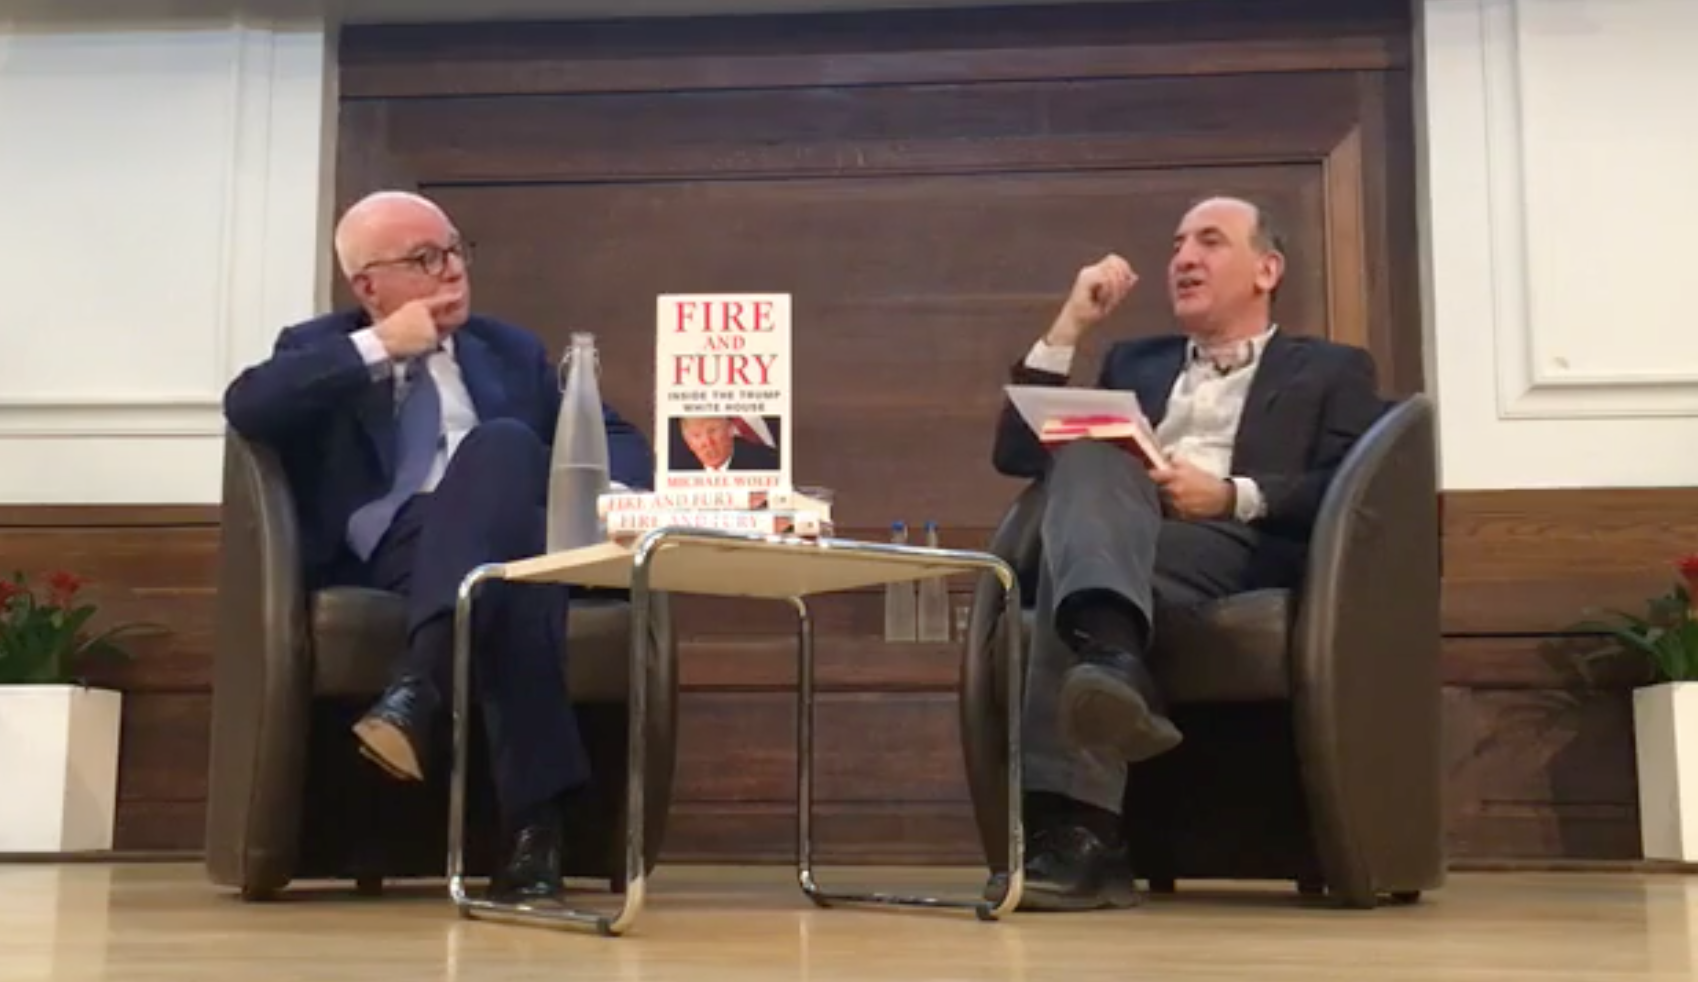 18 Insights Into Donald Trump's World From Armando Iannucci's Interview With Michael Wolff